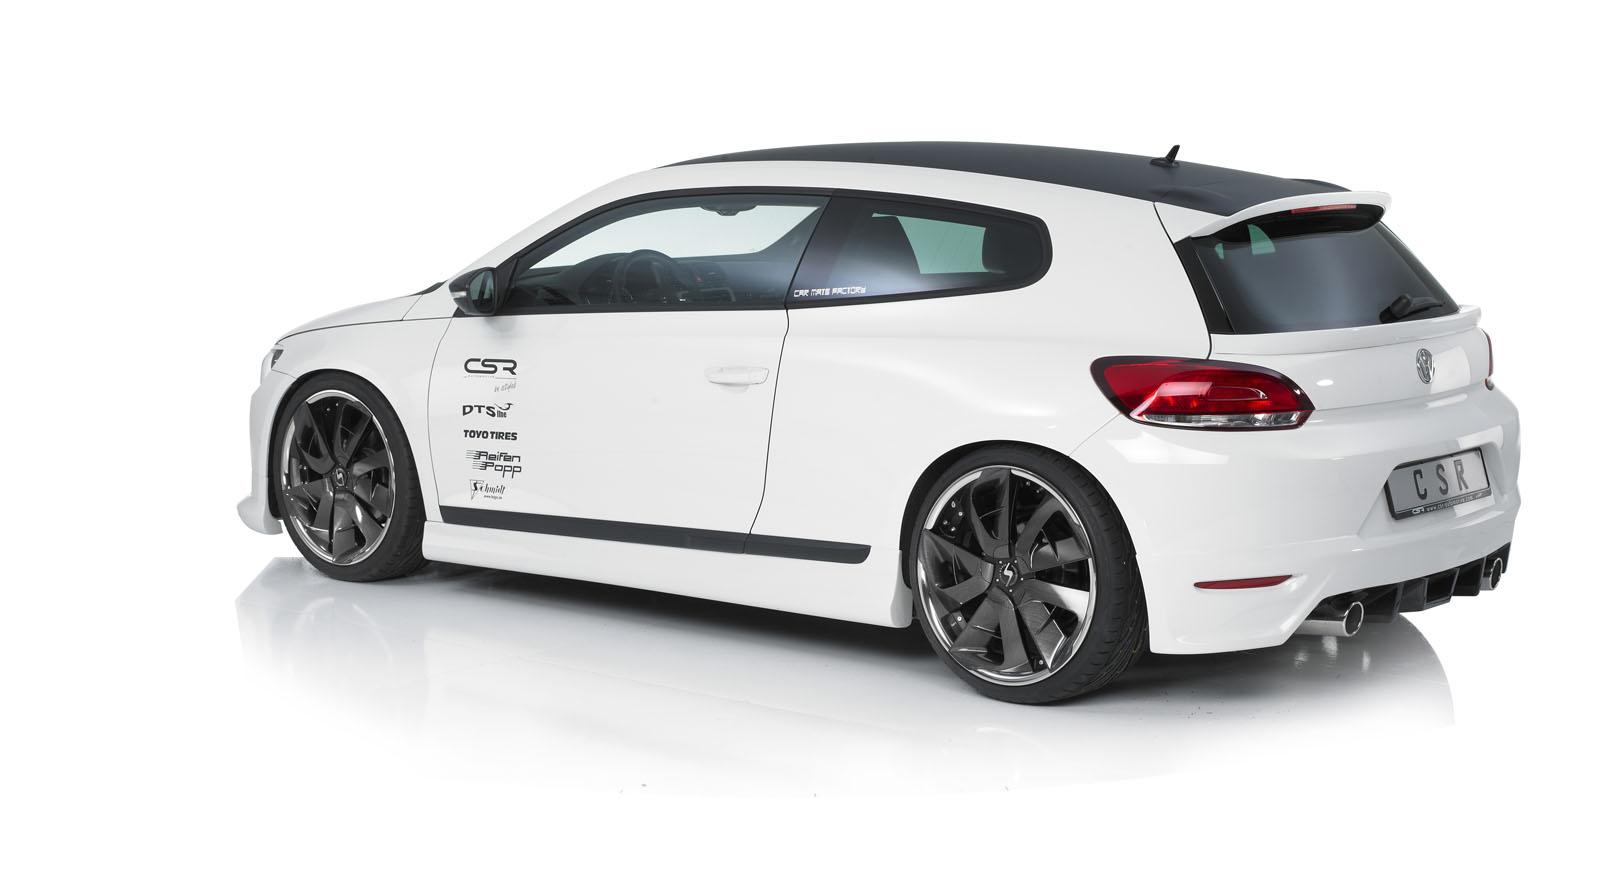 csr scirocco tuning 5 vw tuning mag. Black Bedroom Furniture Sets. Home Design Ideas